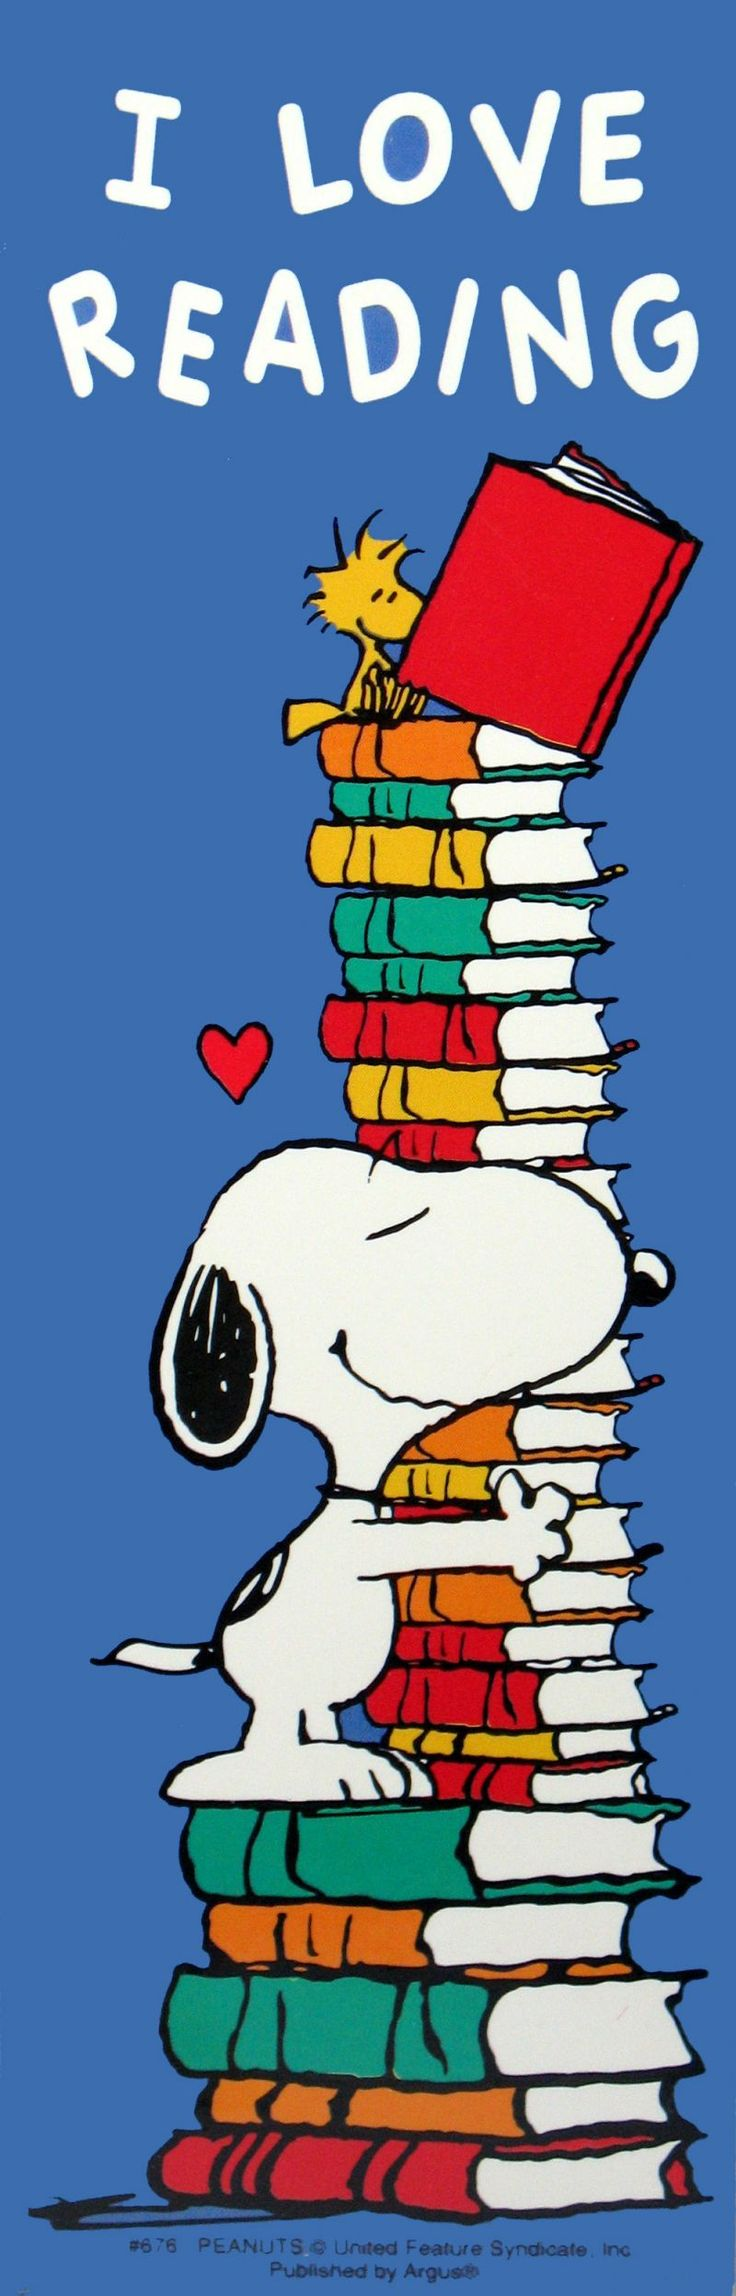 I love reading...and Snoopy!